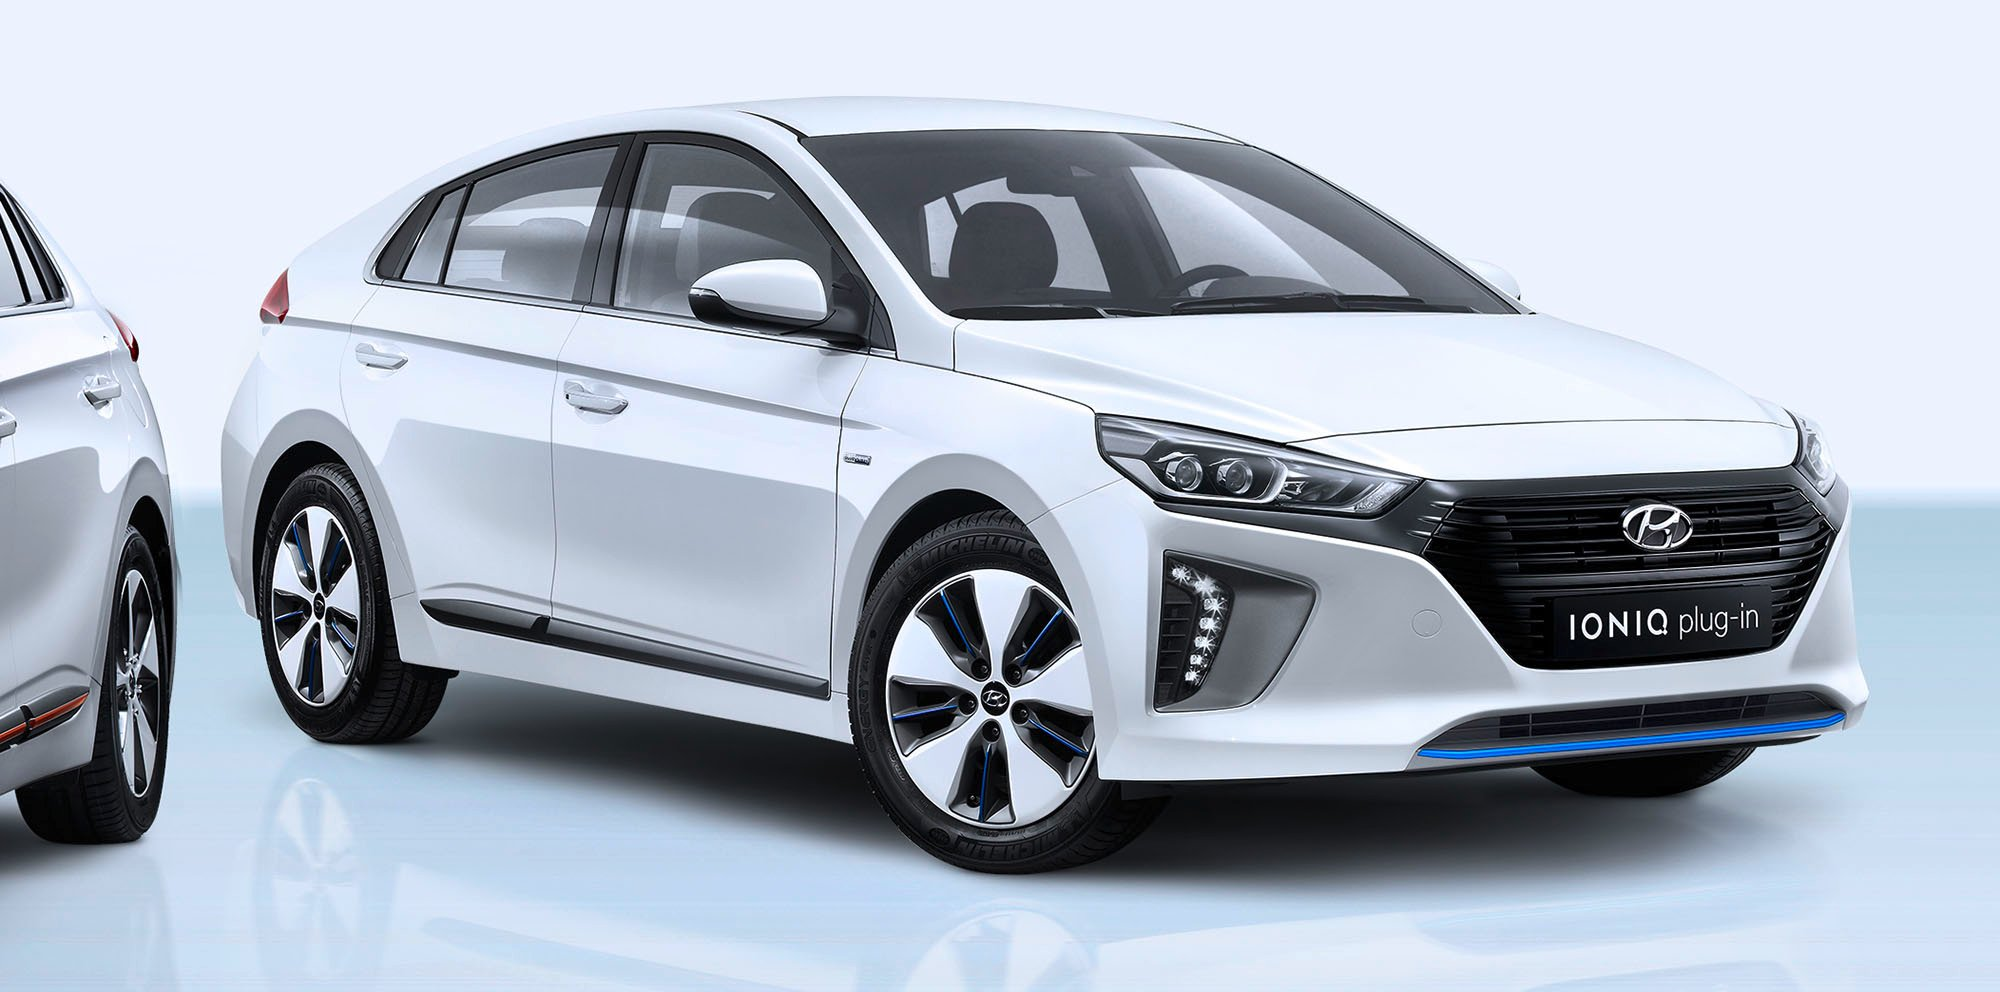 2017 hyundai ioniq plug in hybrid and electric unveiled. Black Bedroom Furniture Sets. Home Design Ideas